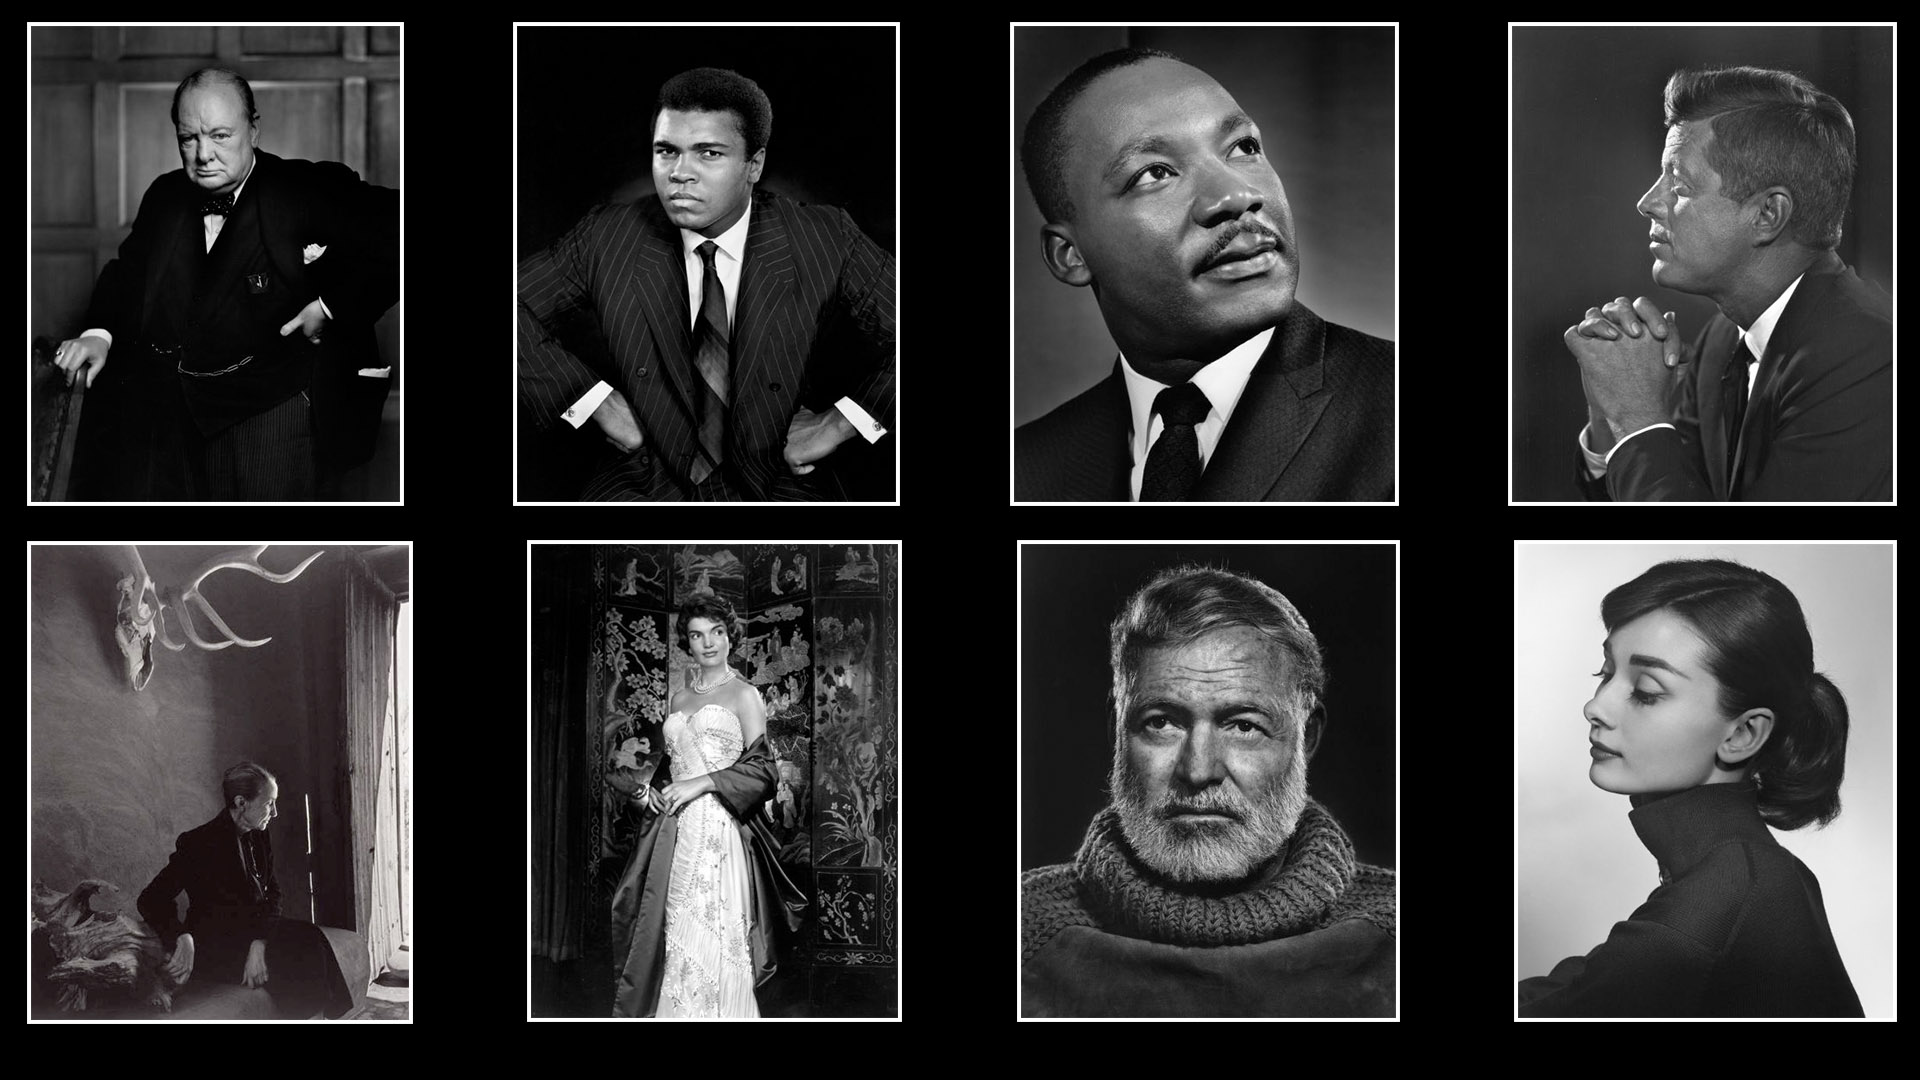 Yousuf Karsh Portraits featured in On Photography on Photofocus